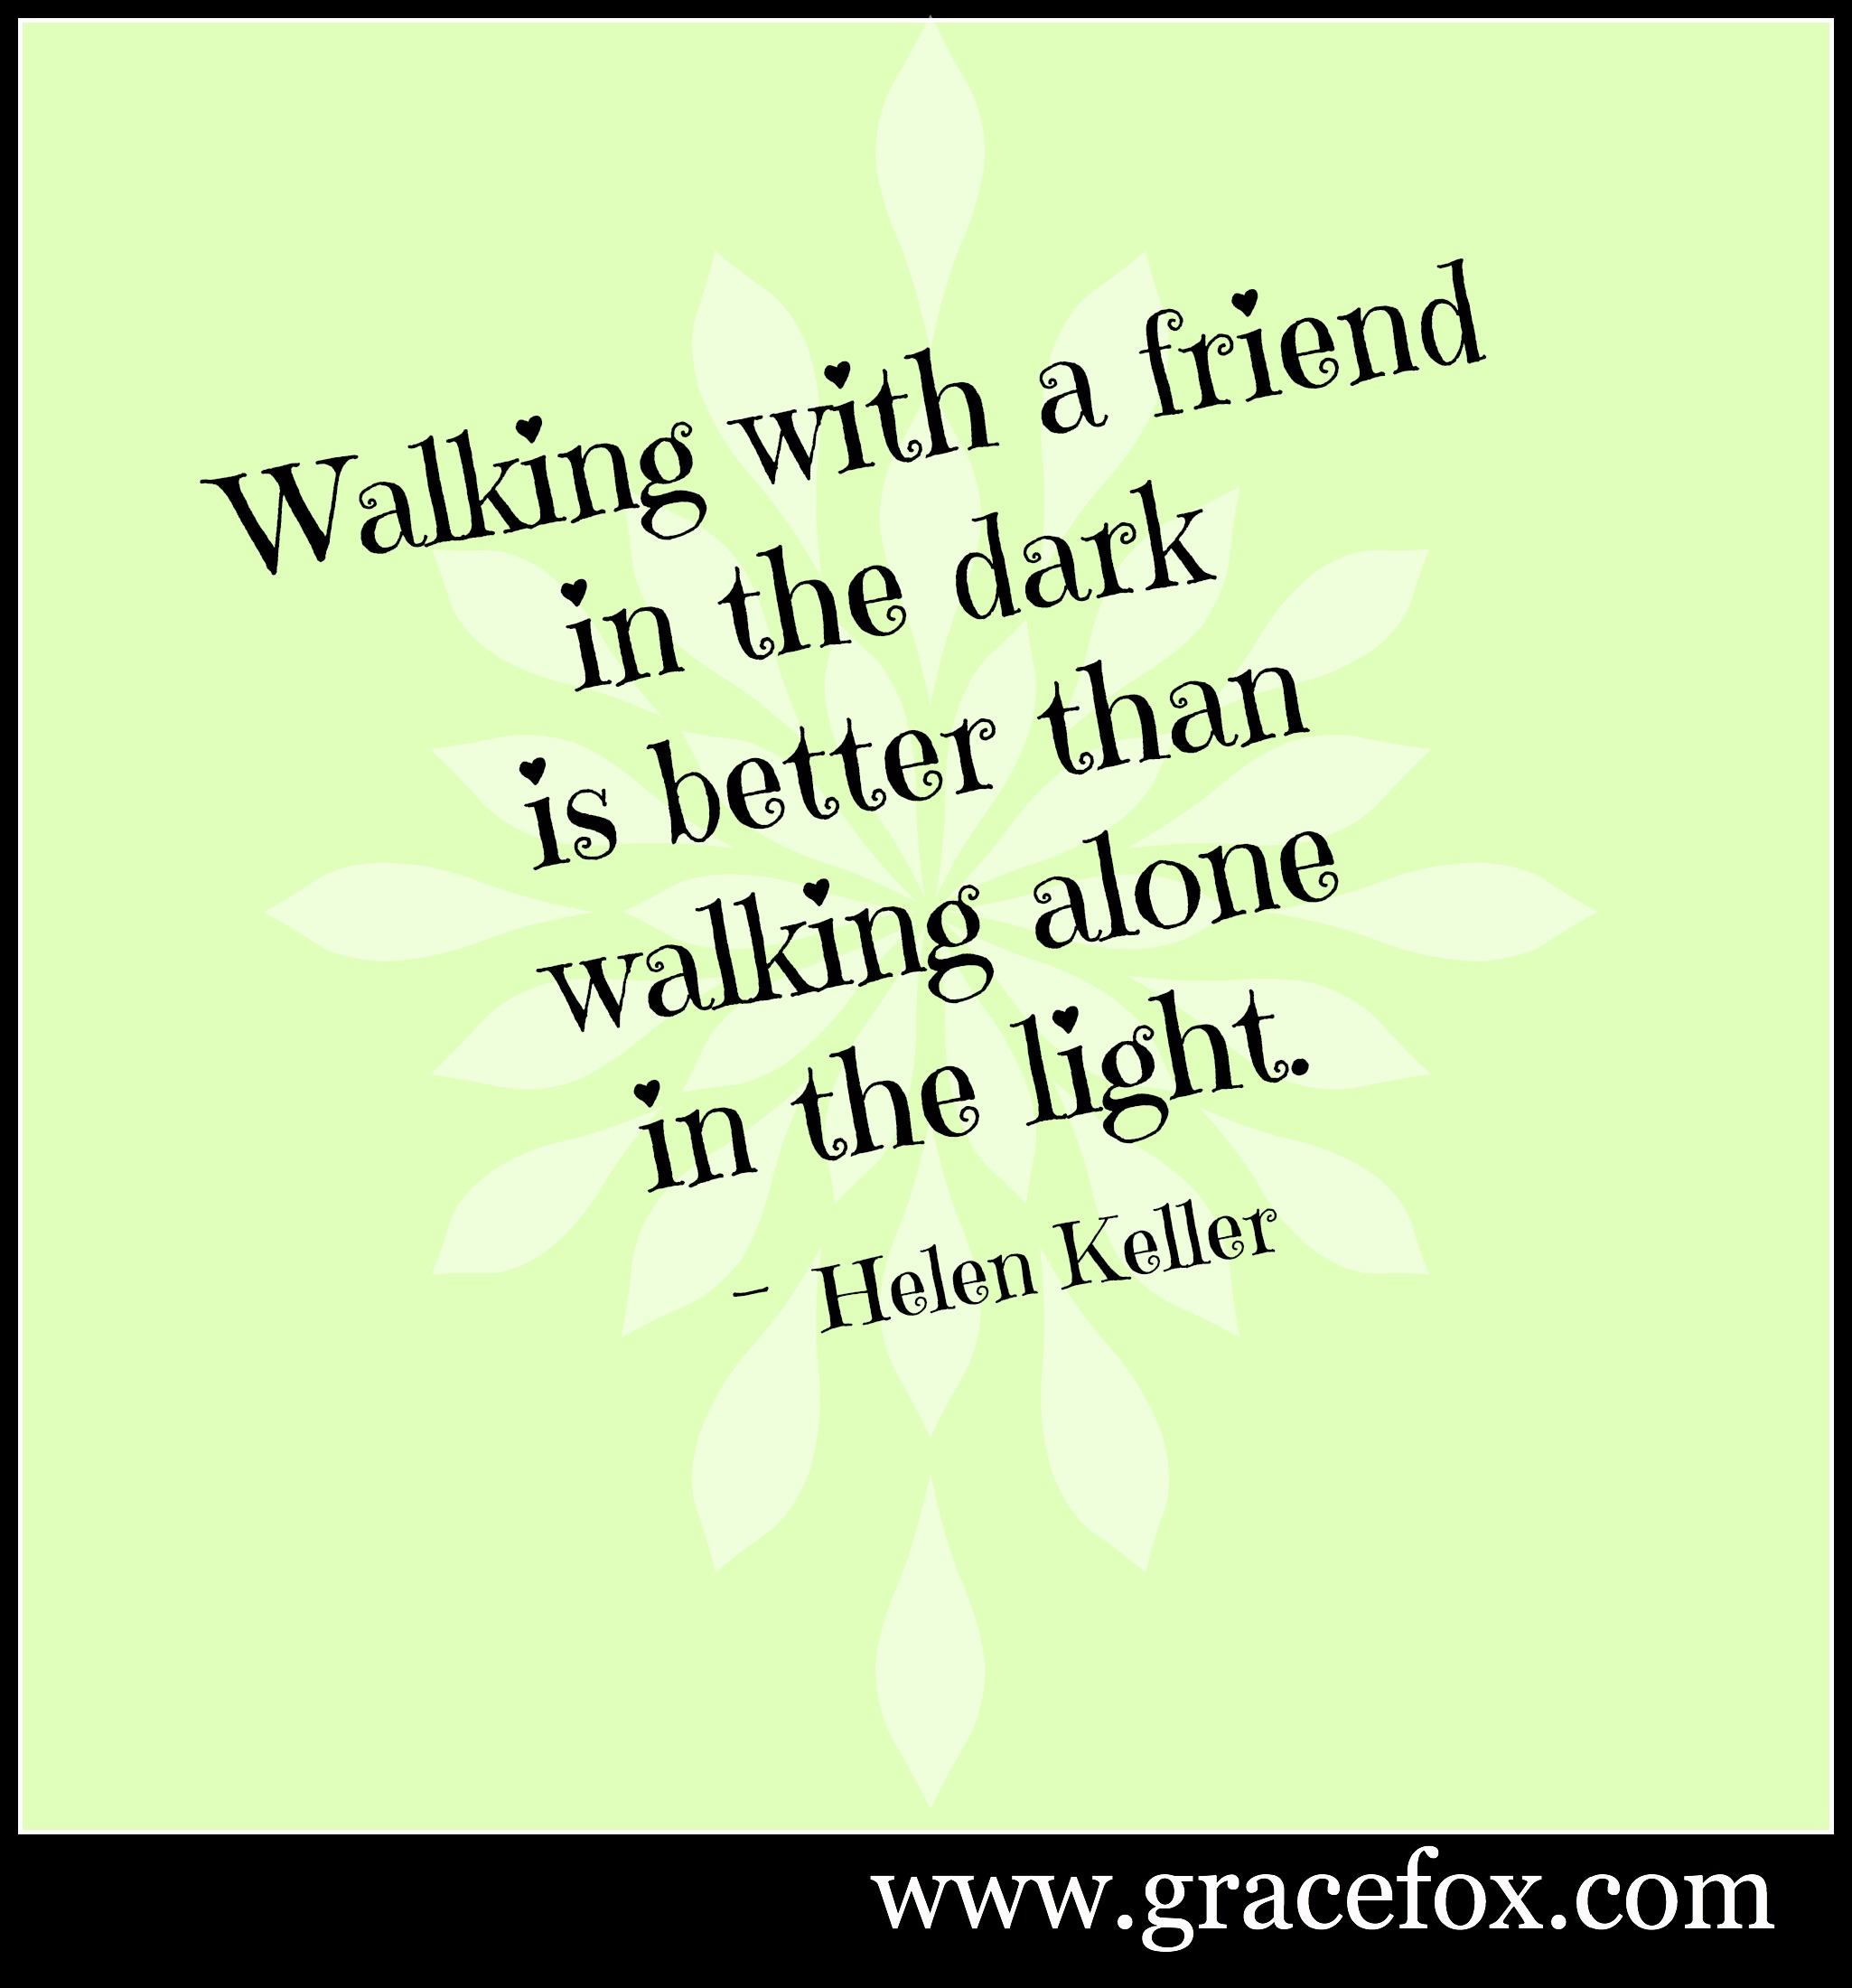 Quotes About Real Friendship Real Friend Quotes Bible Bible Quotes About True Friendship